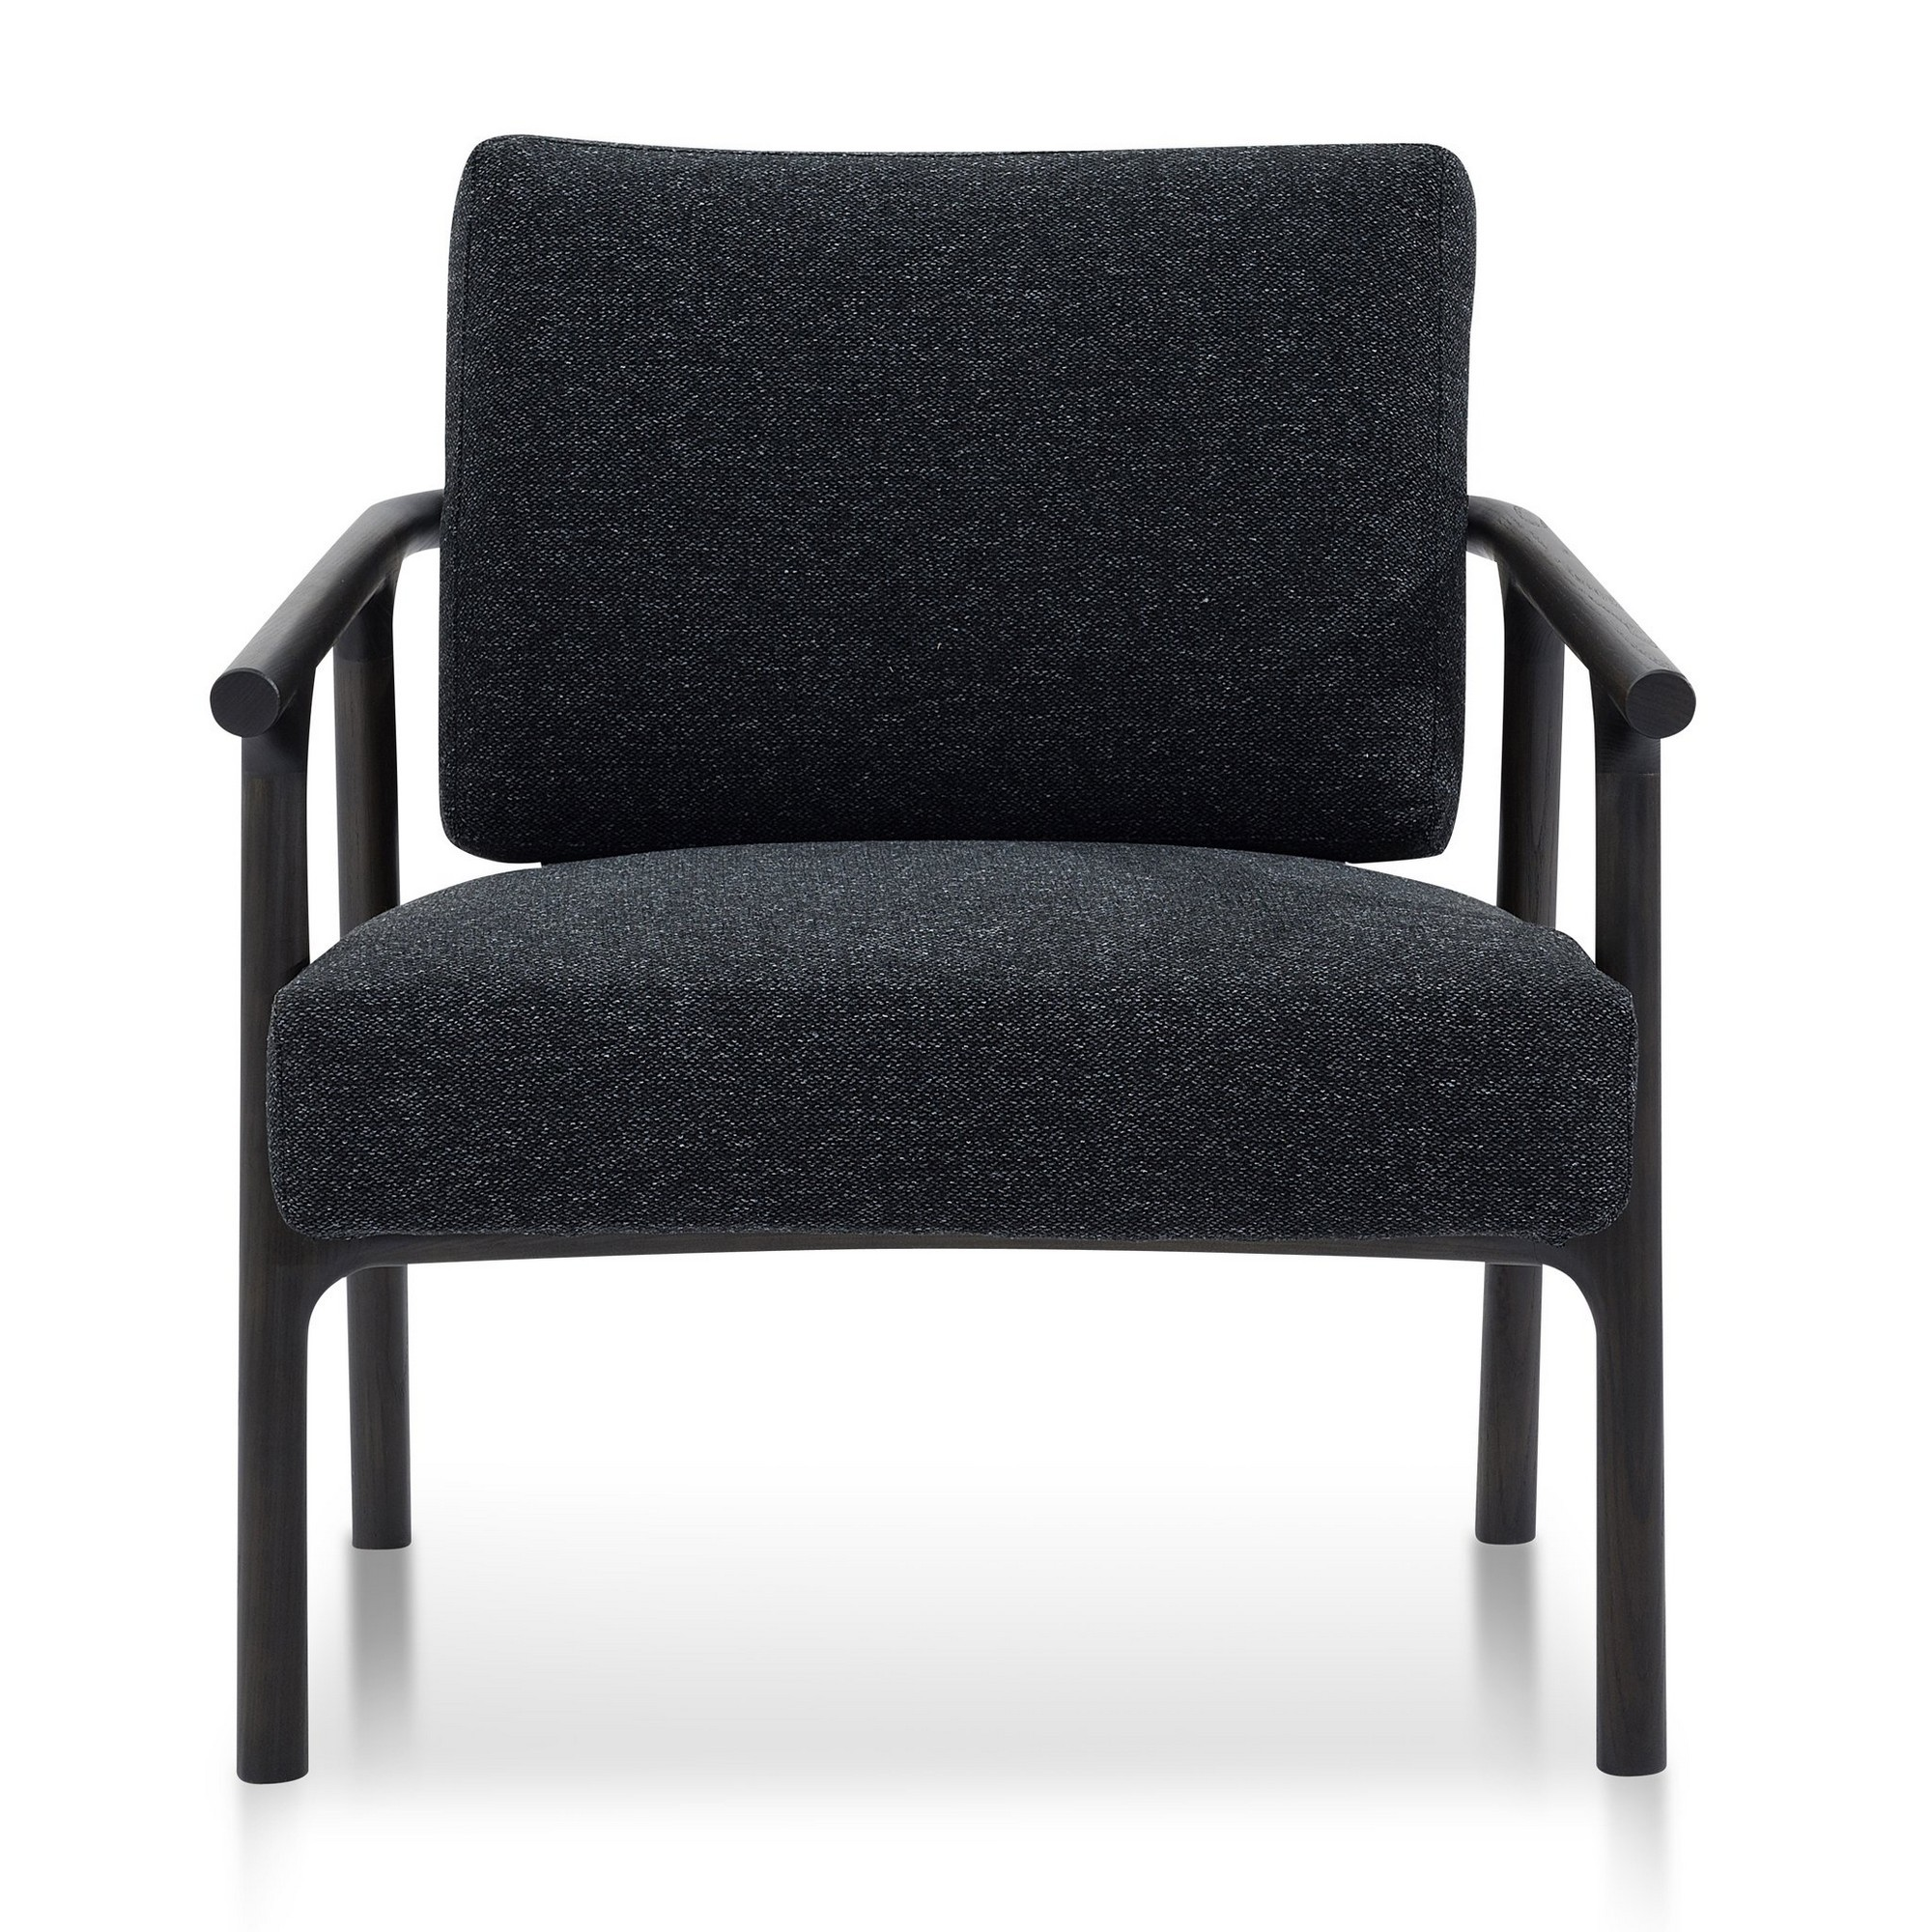 Cardiff Fabric & Wood Armchair, Charcoal / Black